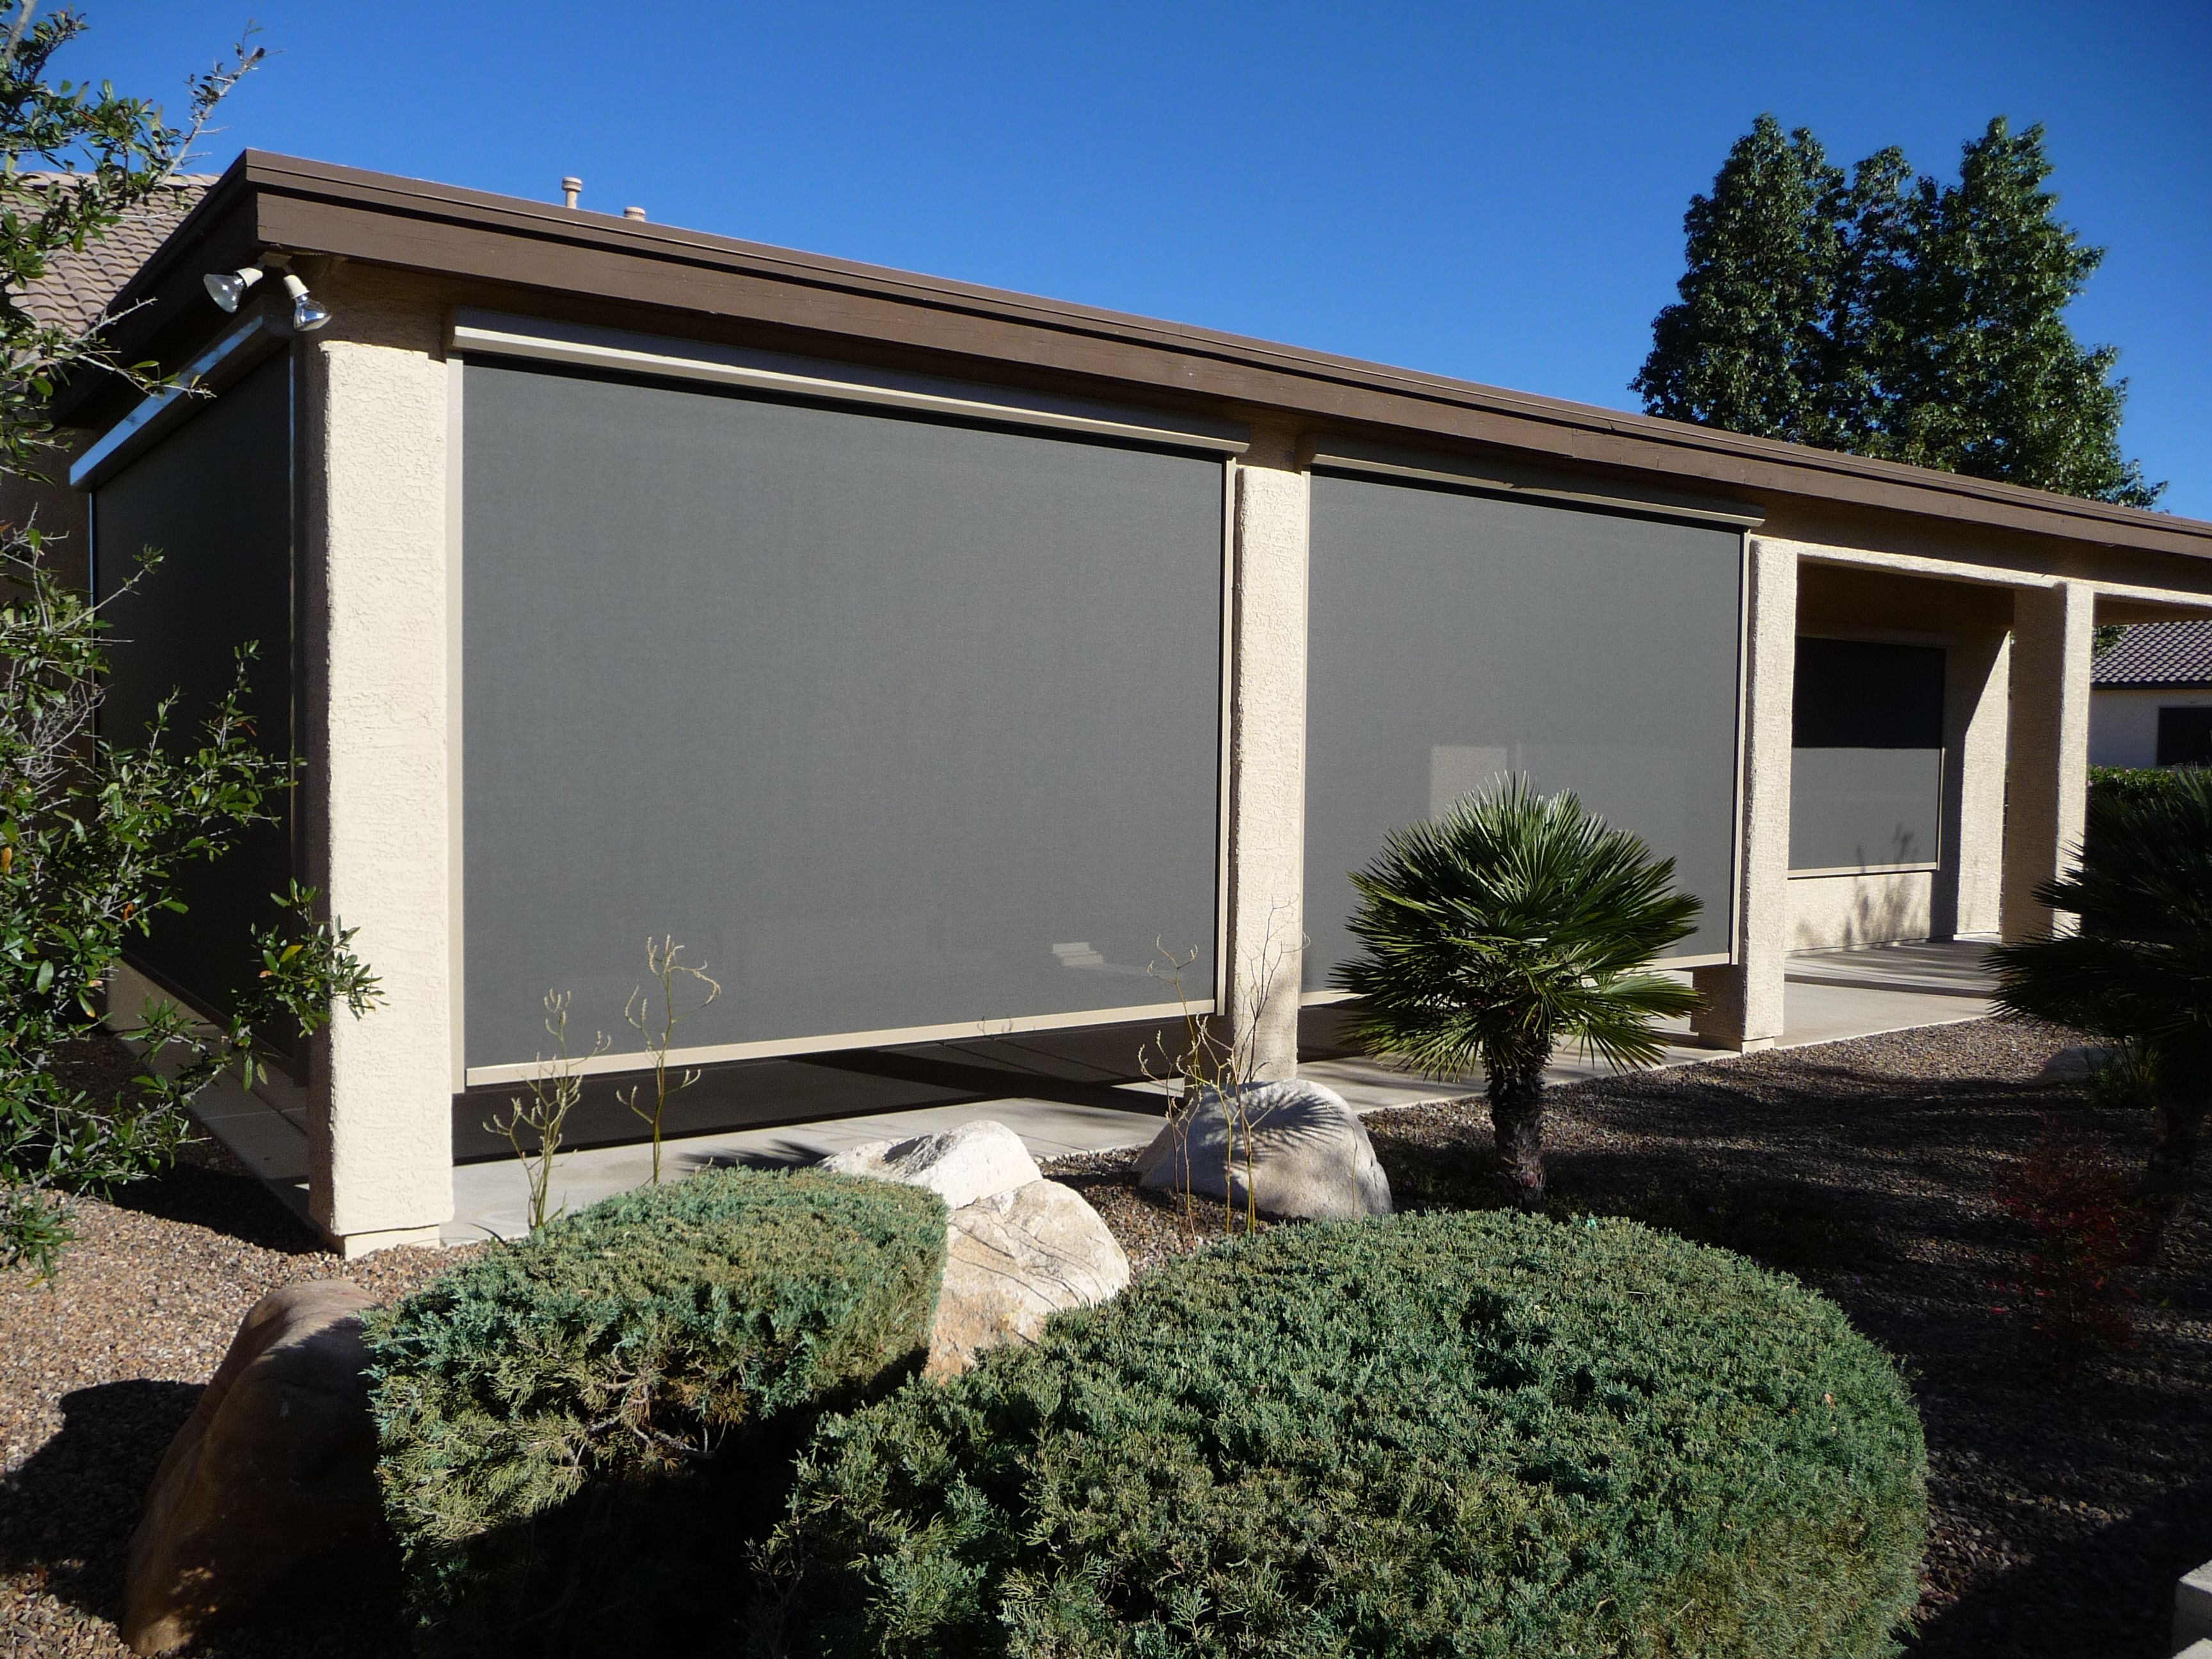 Exterior Shades offer energy efficiency and sun protection.